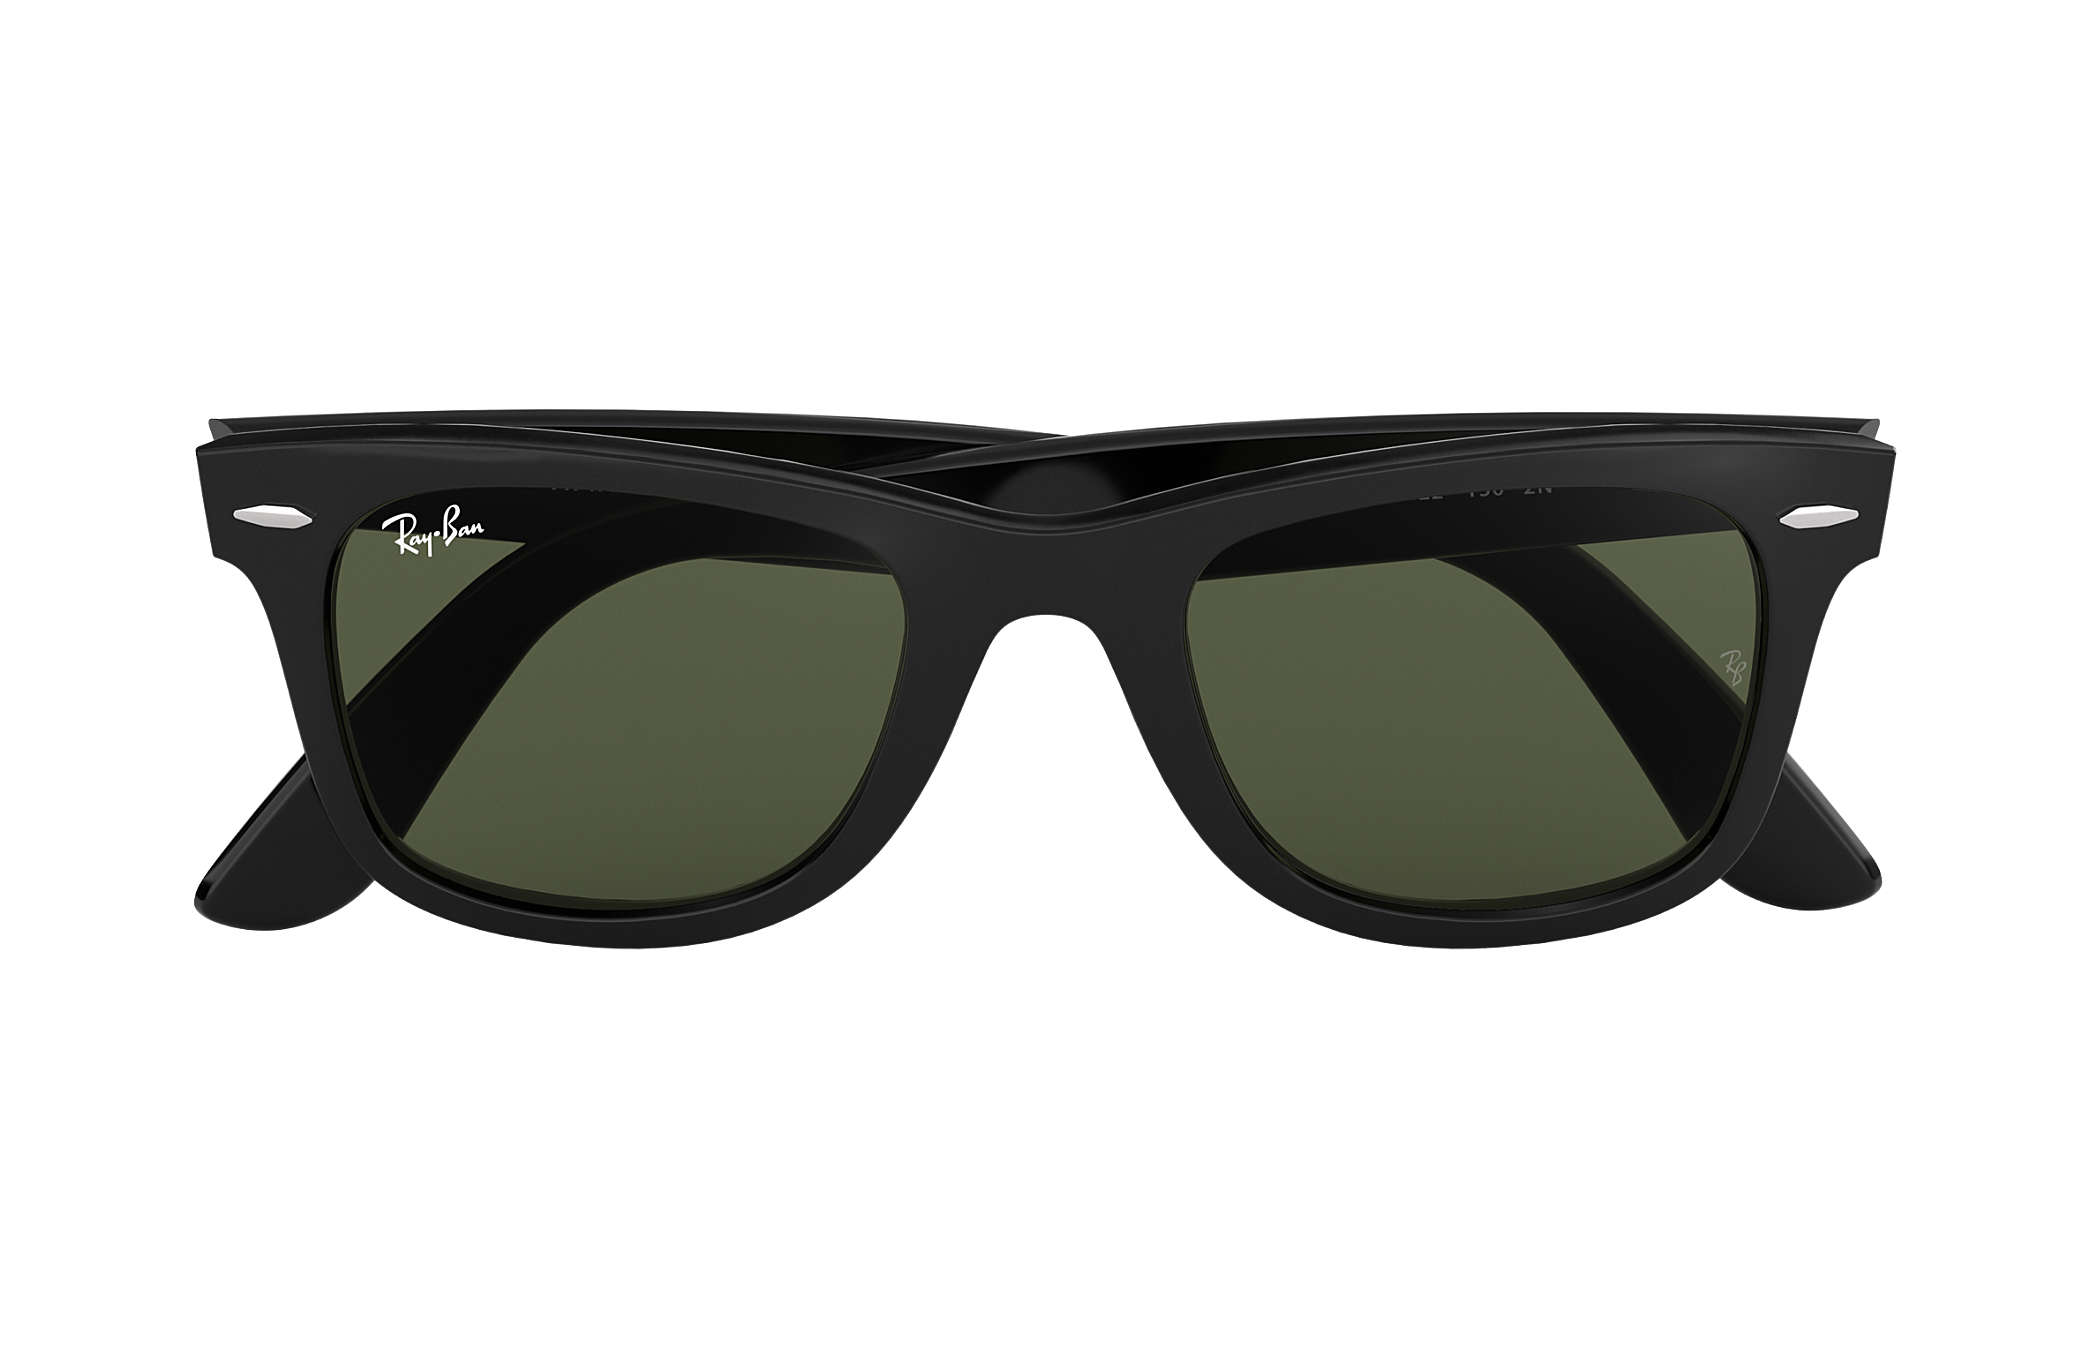 9e62424aa49 Ray-Ban Original Wayfarer Classic RB2140 Black - Acetate - Green ...